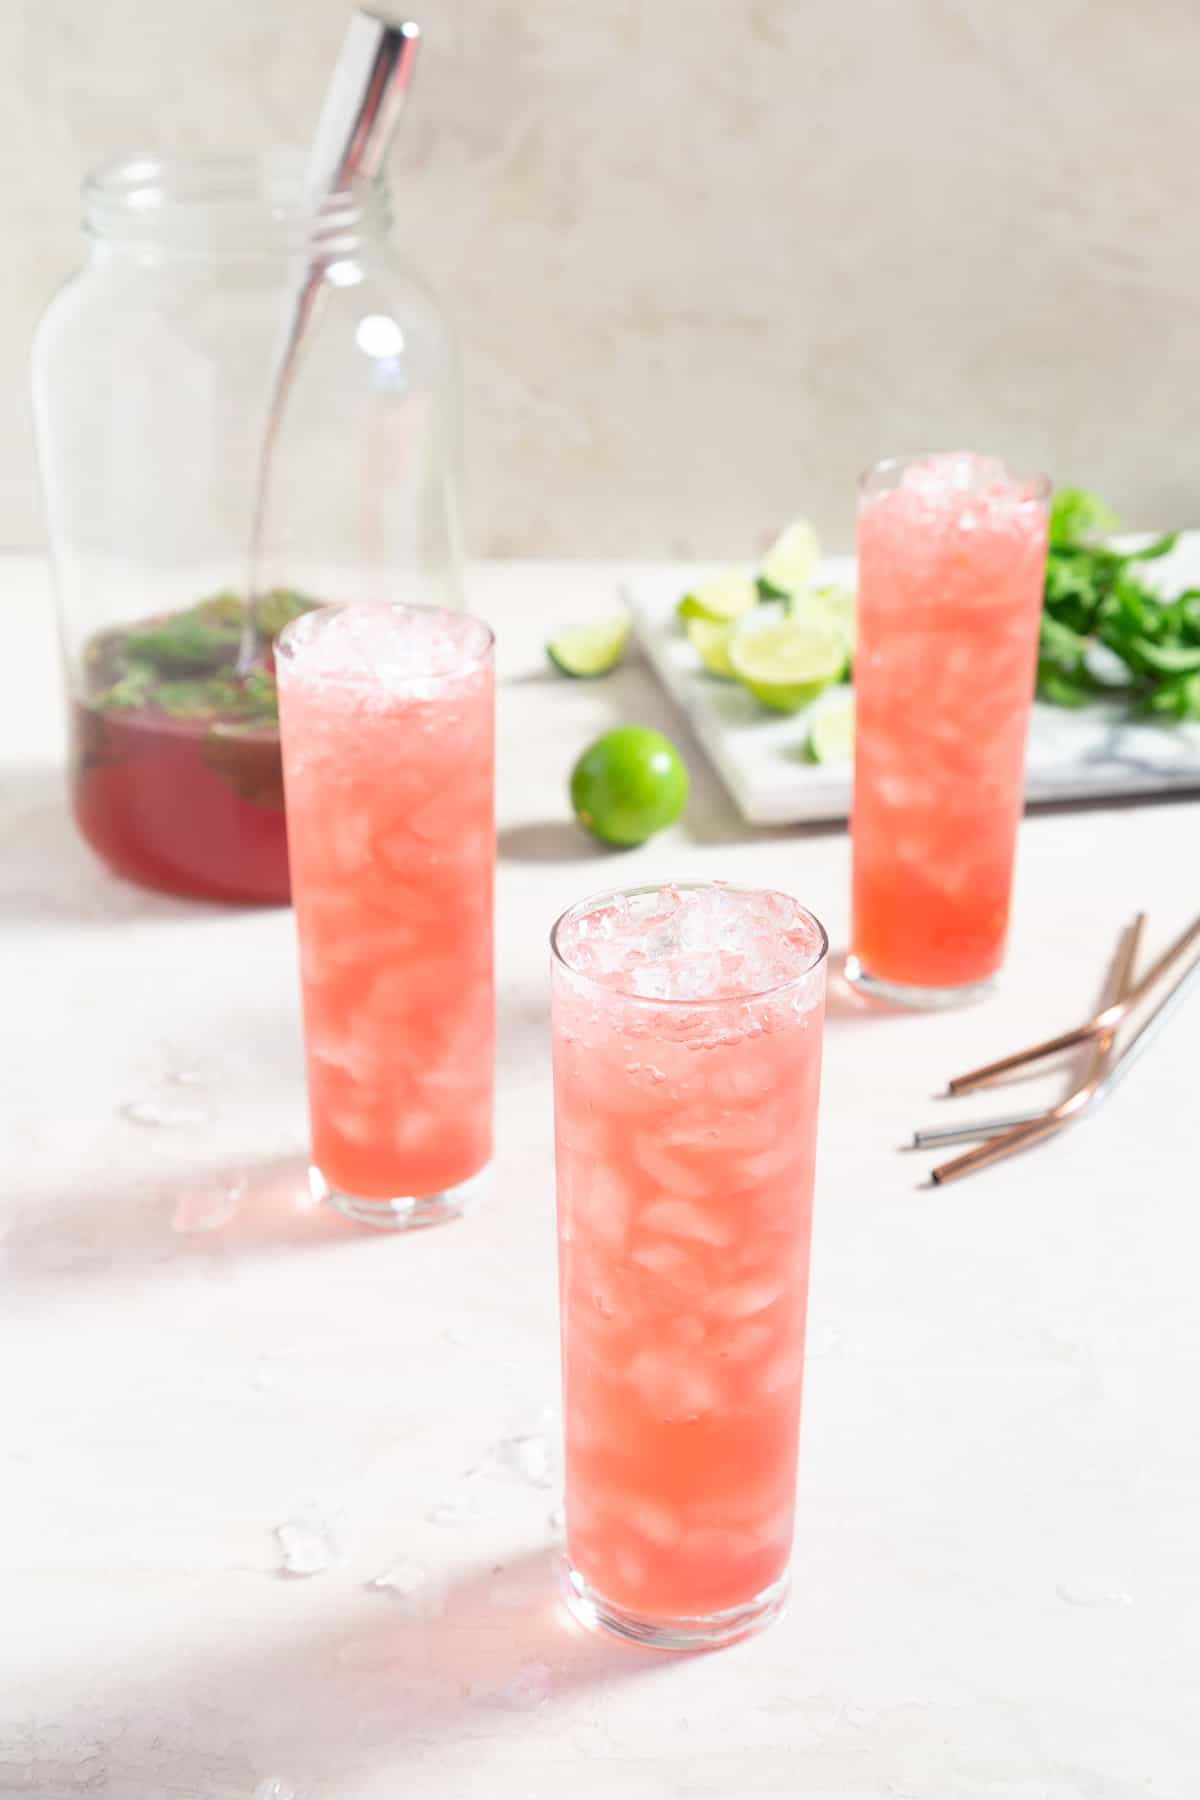 3 glasses filled with ice and pink punch. Large pitcher of punch in the background.